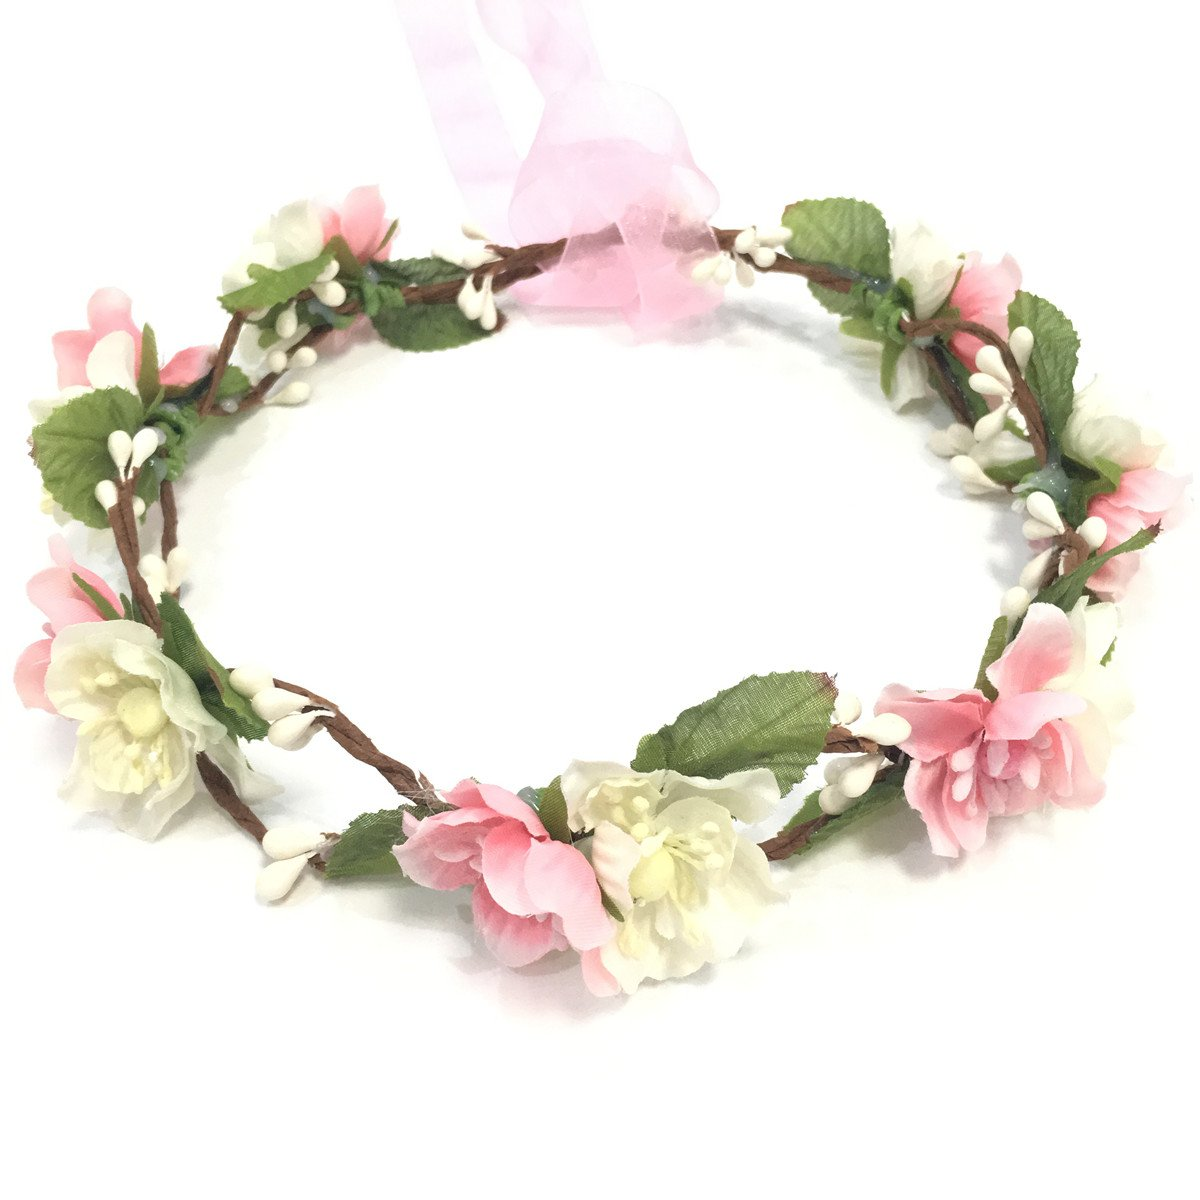 Amazon.com   Bridal Flower Crown Floral Crown Wedding Wreath Headband  Garland Women Pink   Beauty dc133c3a6f4